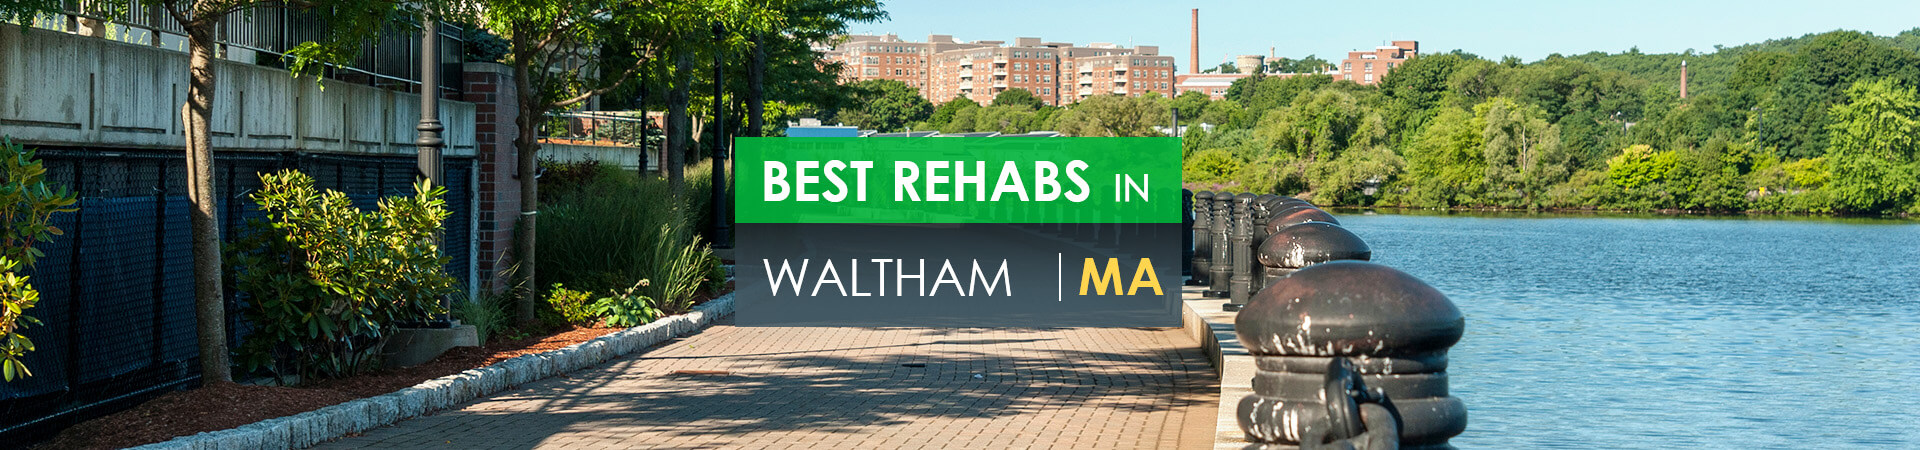 Best rehabs in Waltham, MA